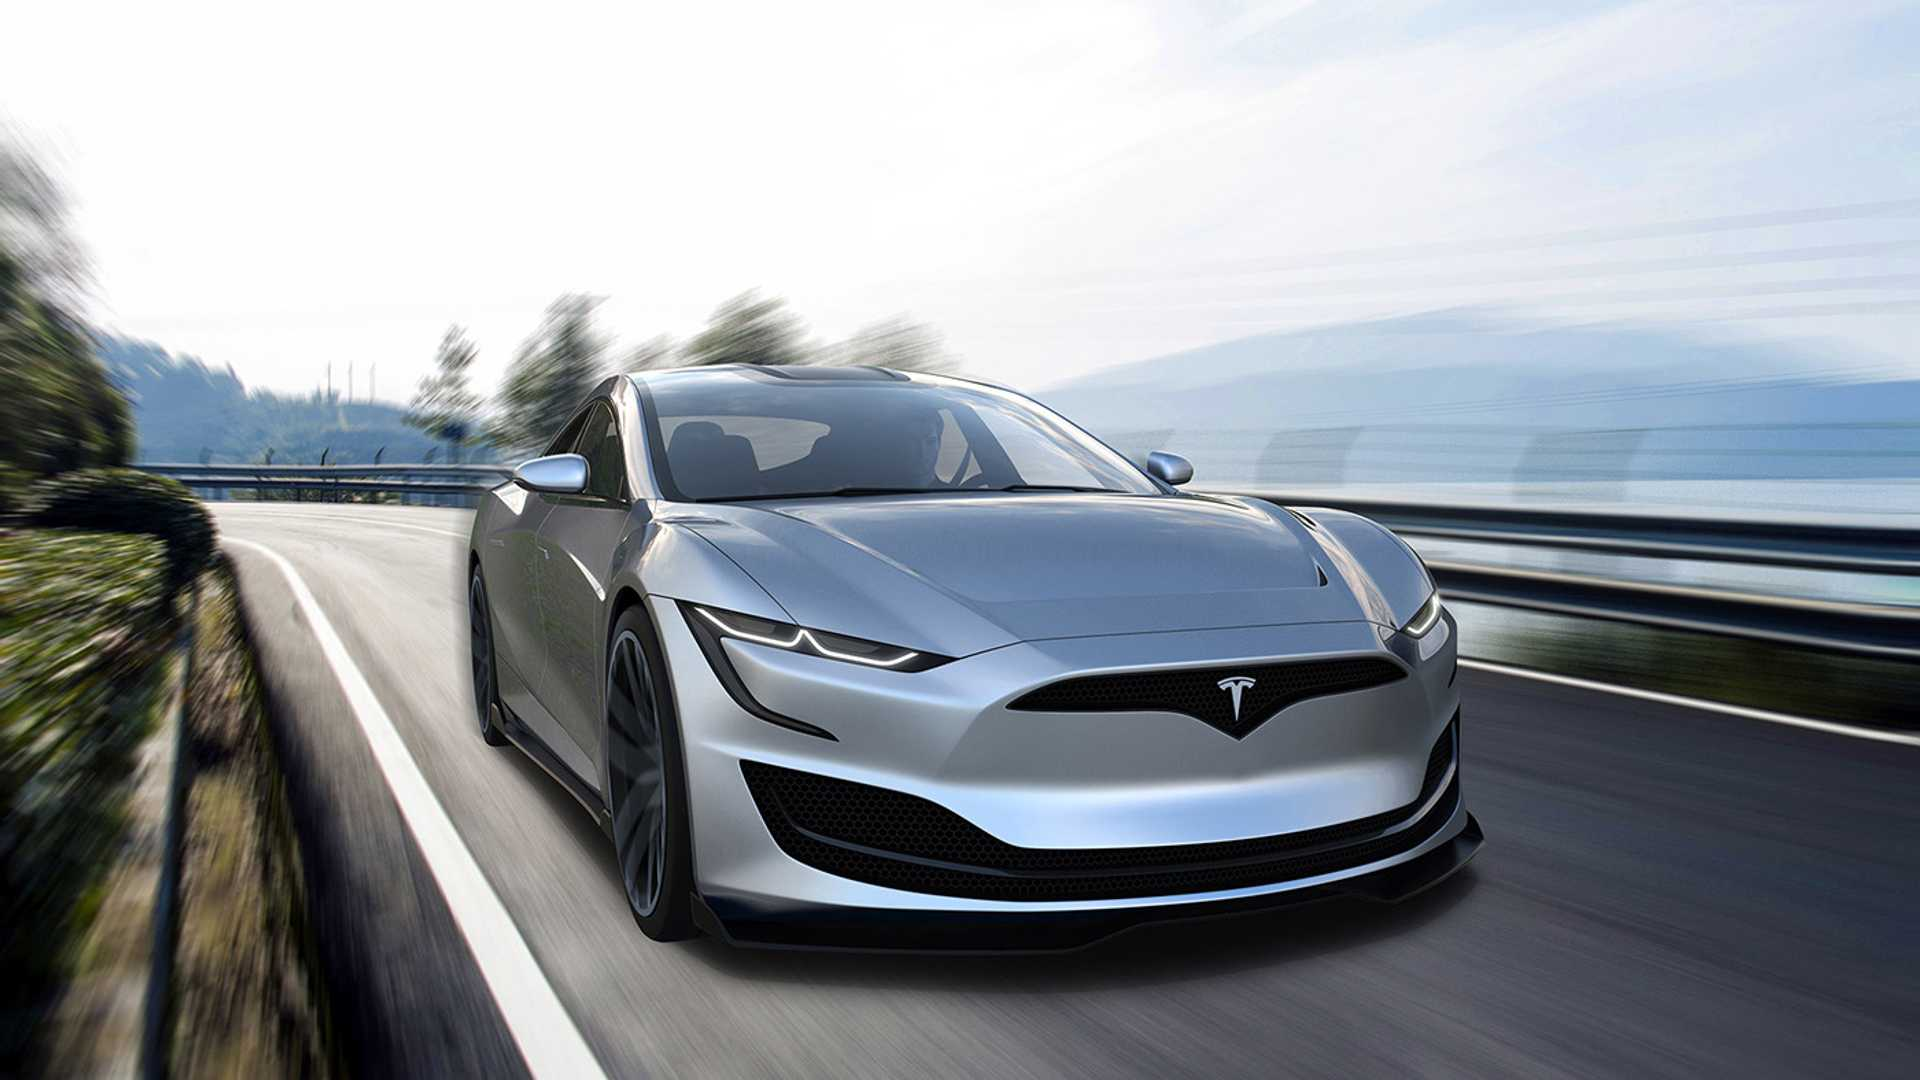 95 All New 2020 Tesla Model S Price And Release Date